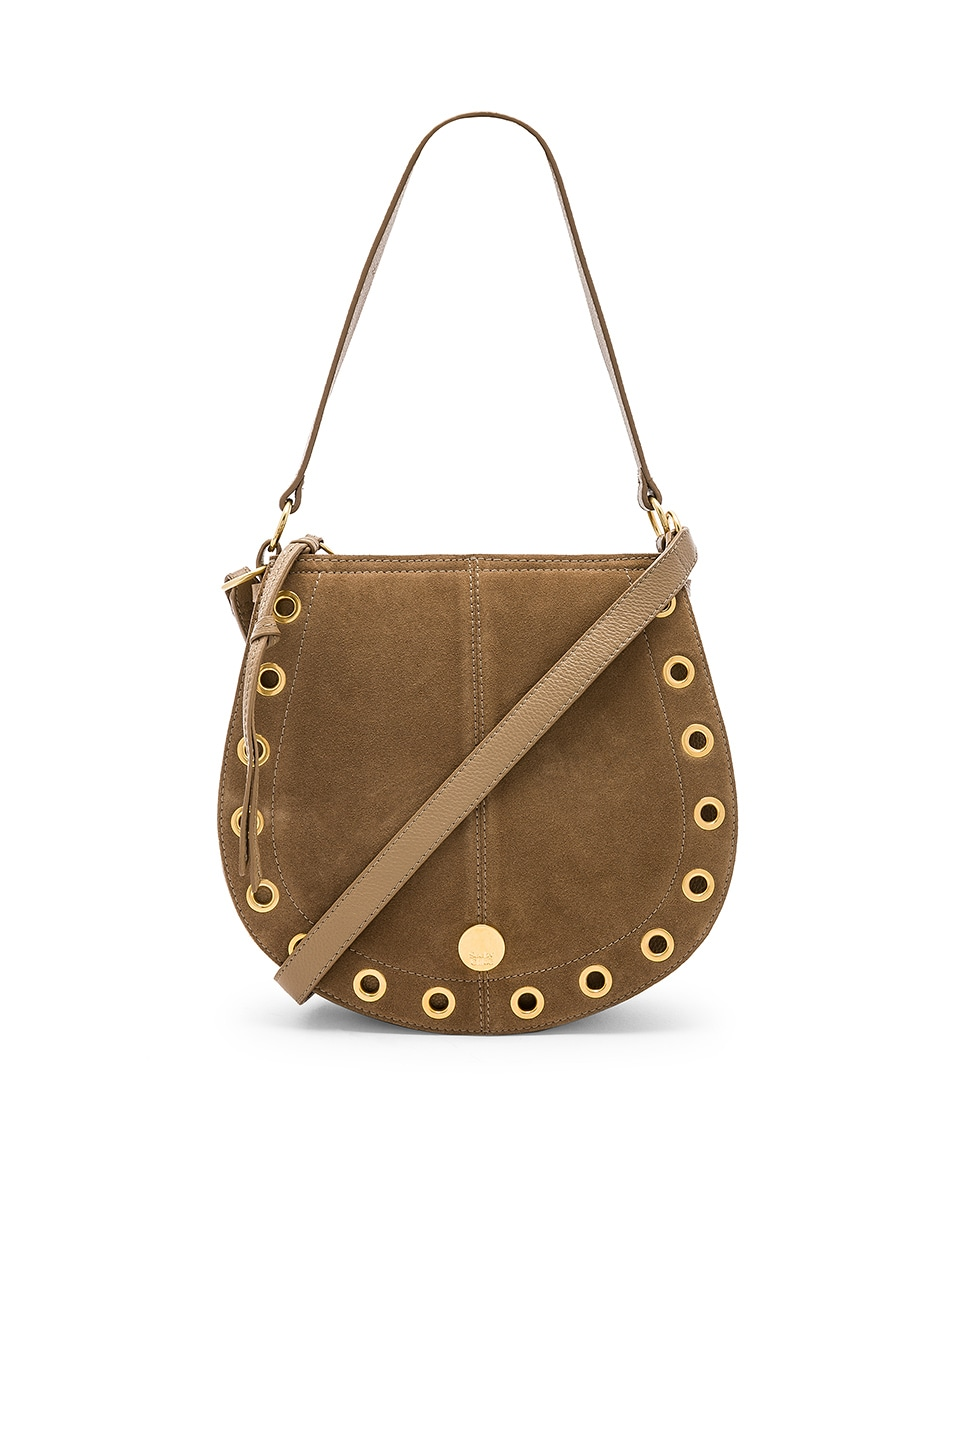 Kriss Small Hobo Crossbody